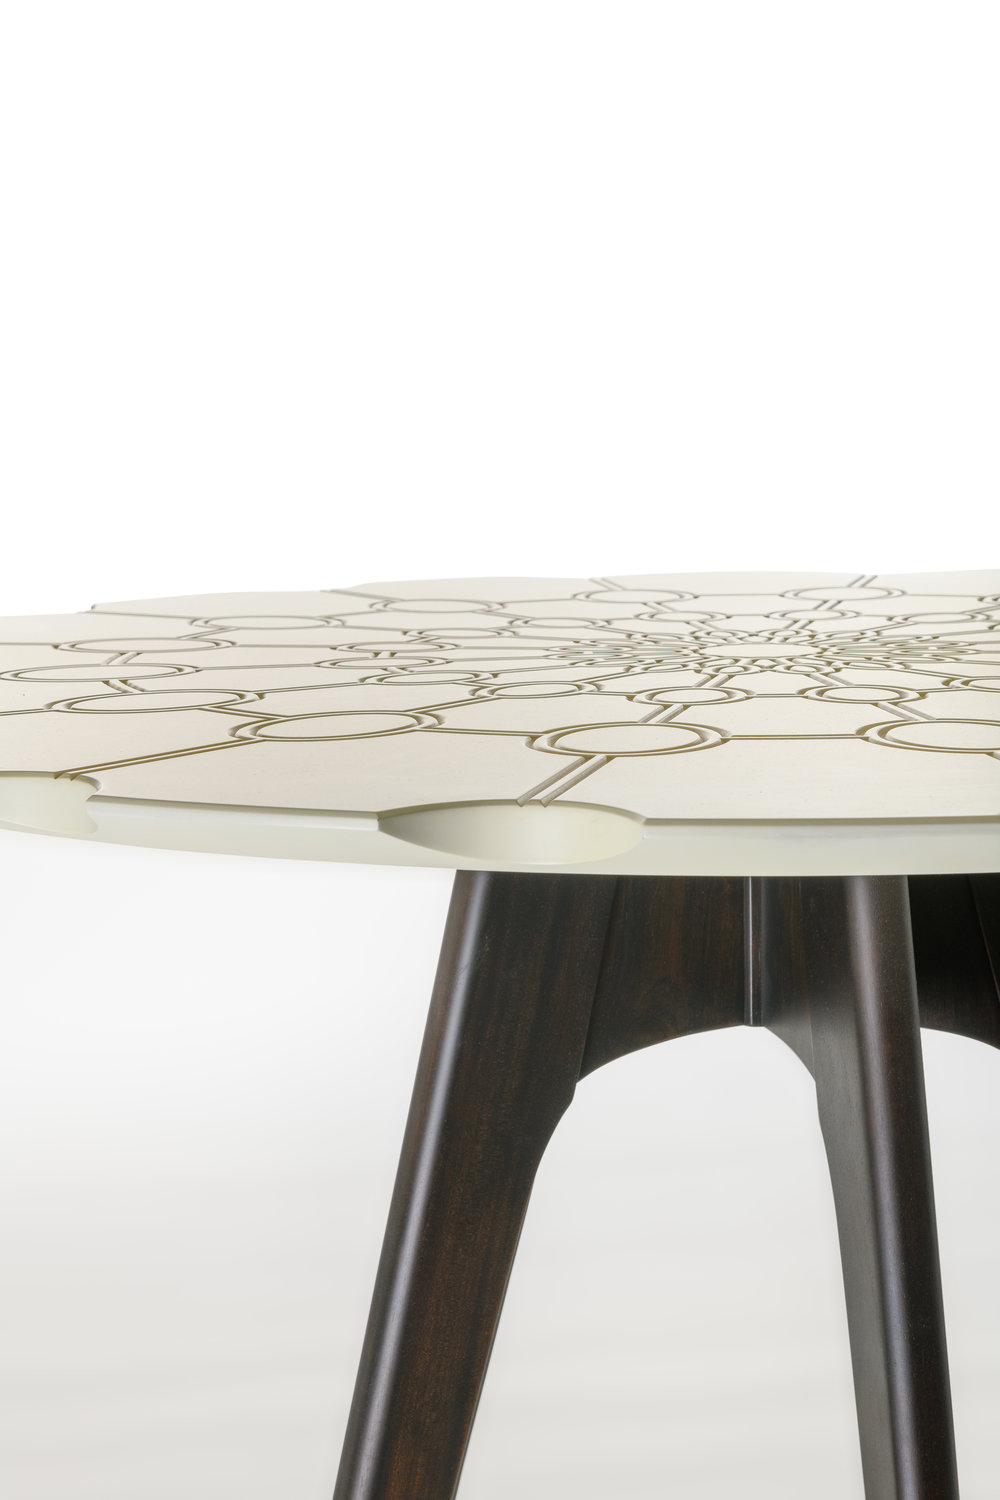 "Danska Table — Table Top Detail,  Mahogany, Sepele, Composite and Leather, 41.25""H x 16""W x 19.5""D"